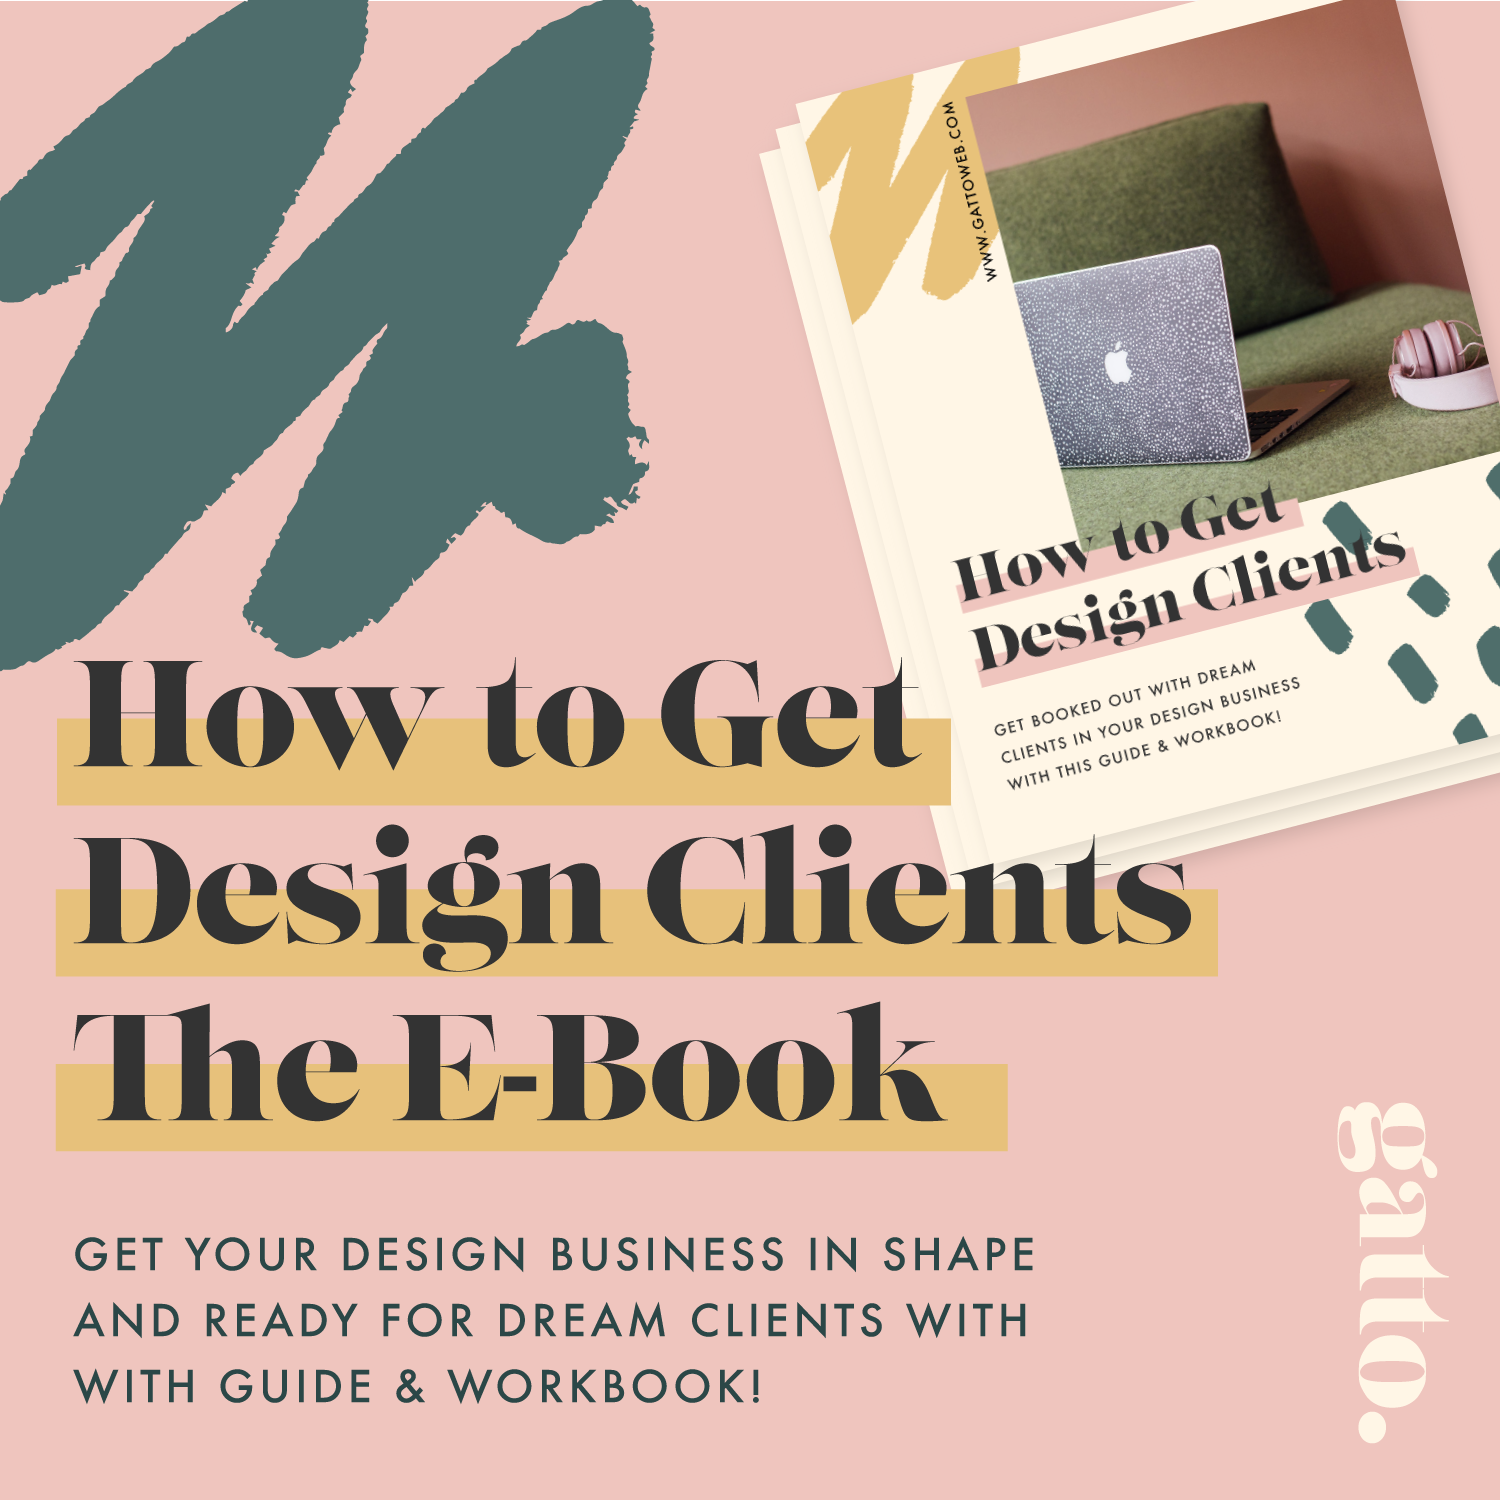 Want more tips to help you get design clients? - I've written an interactive guide and workbook to take you through all the basics and the not-so-basics for setting your design business up for all those dreamy clients to come flooding in!Head over to download the guide now and get your design biz in shape…